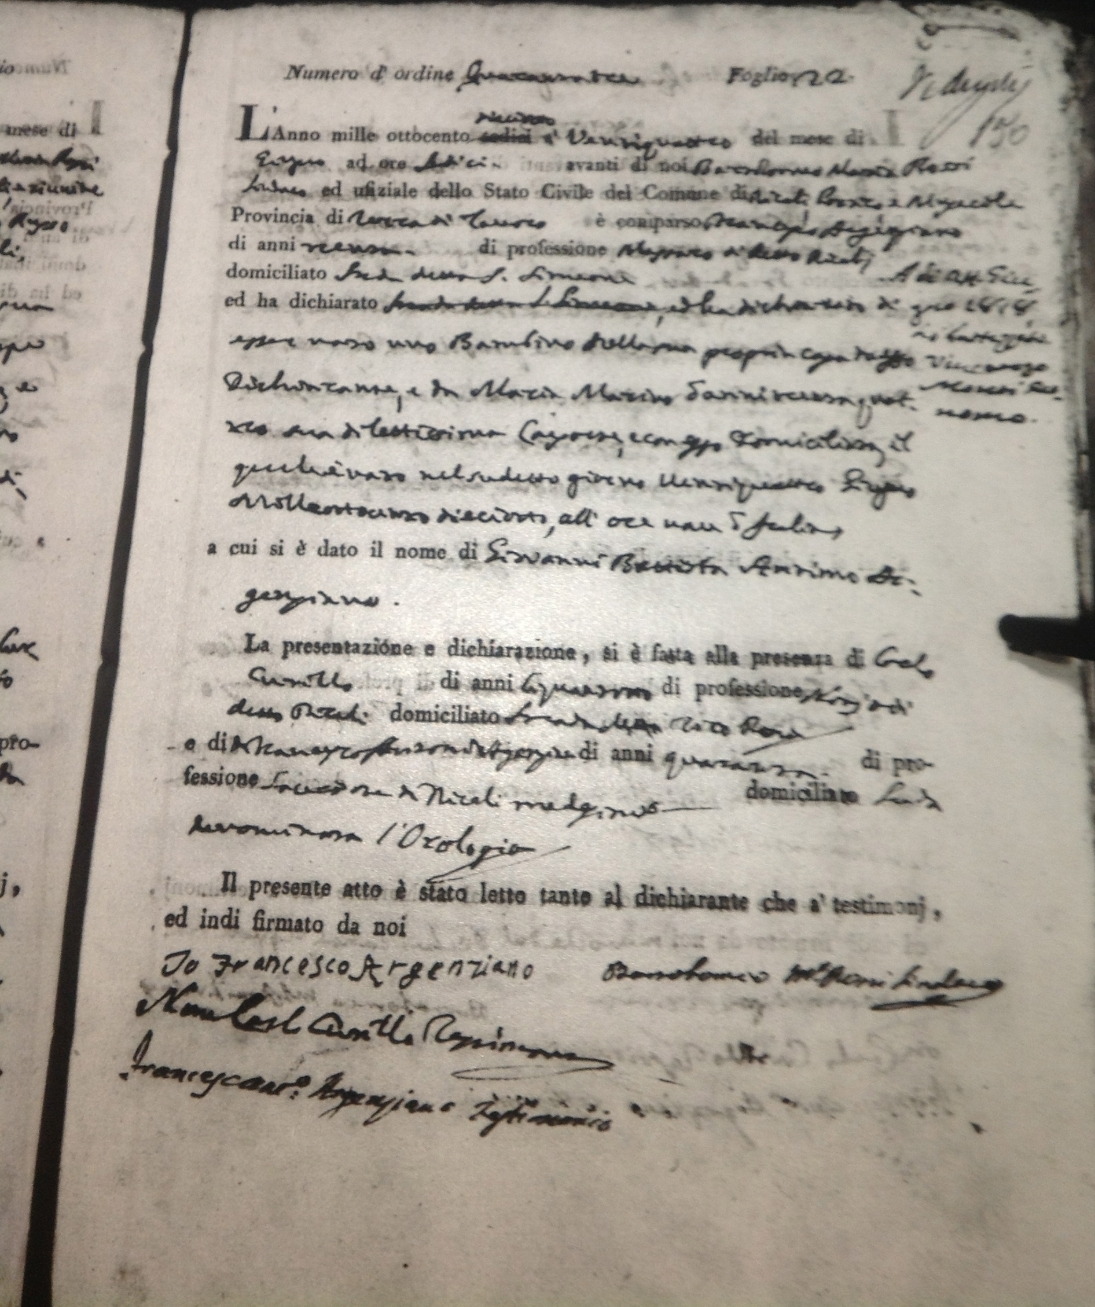 Civil Birth Registration, Recale, Kingdom of Naples, 1818